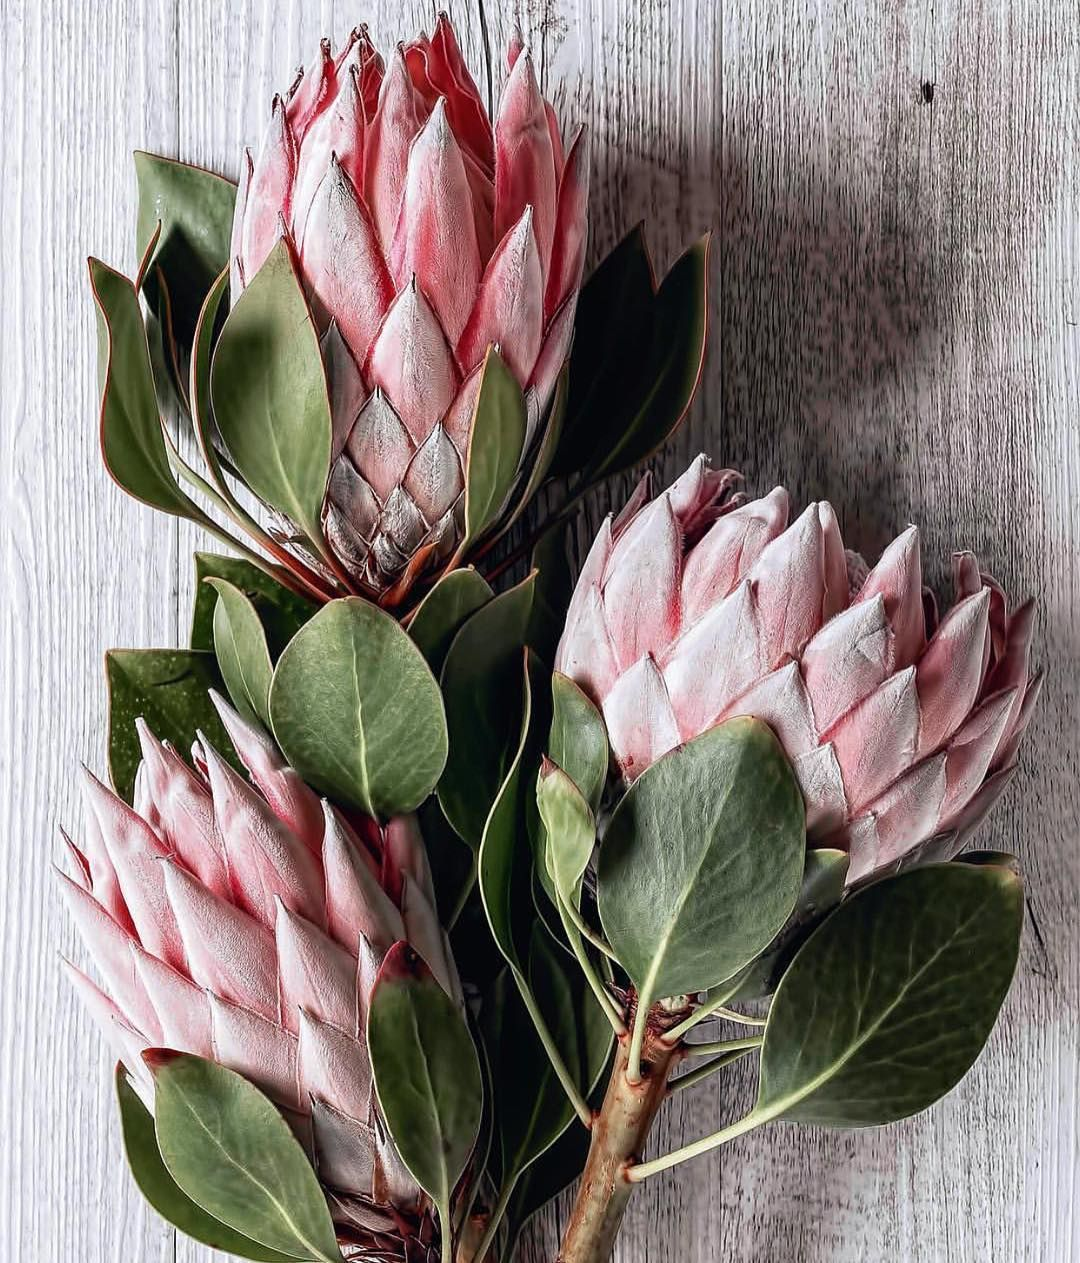 Botanicaetcetera On Instagram Art Istic Licence King Protea By Jane Greystone Janegraystone Kingpr Protea Flower Beautiful Flowers Wallpapers Protea Art